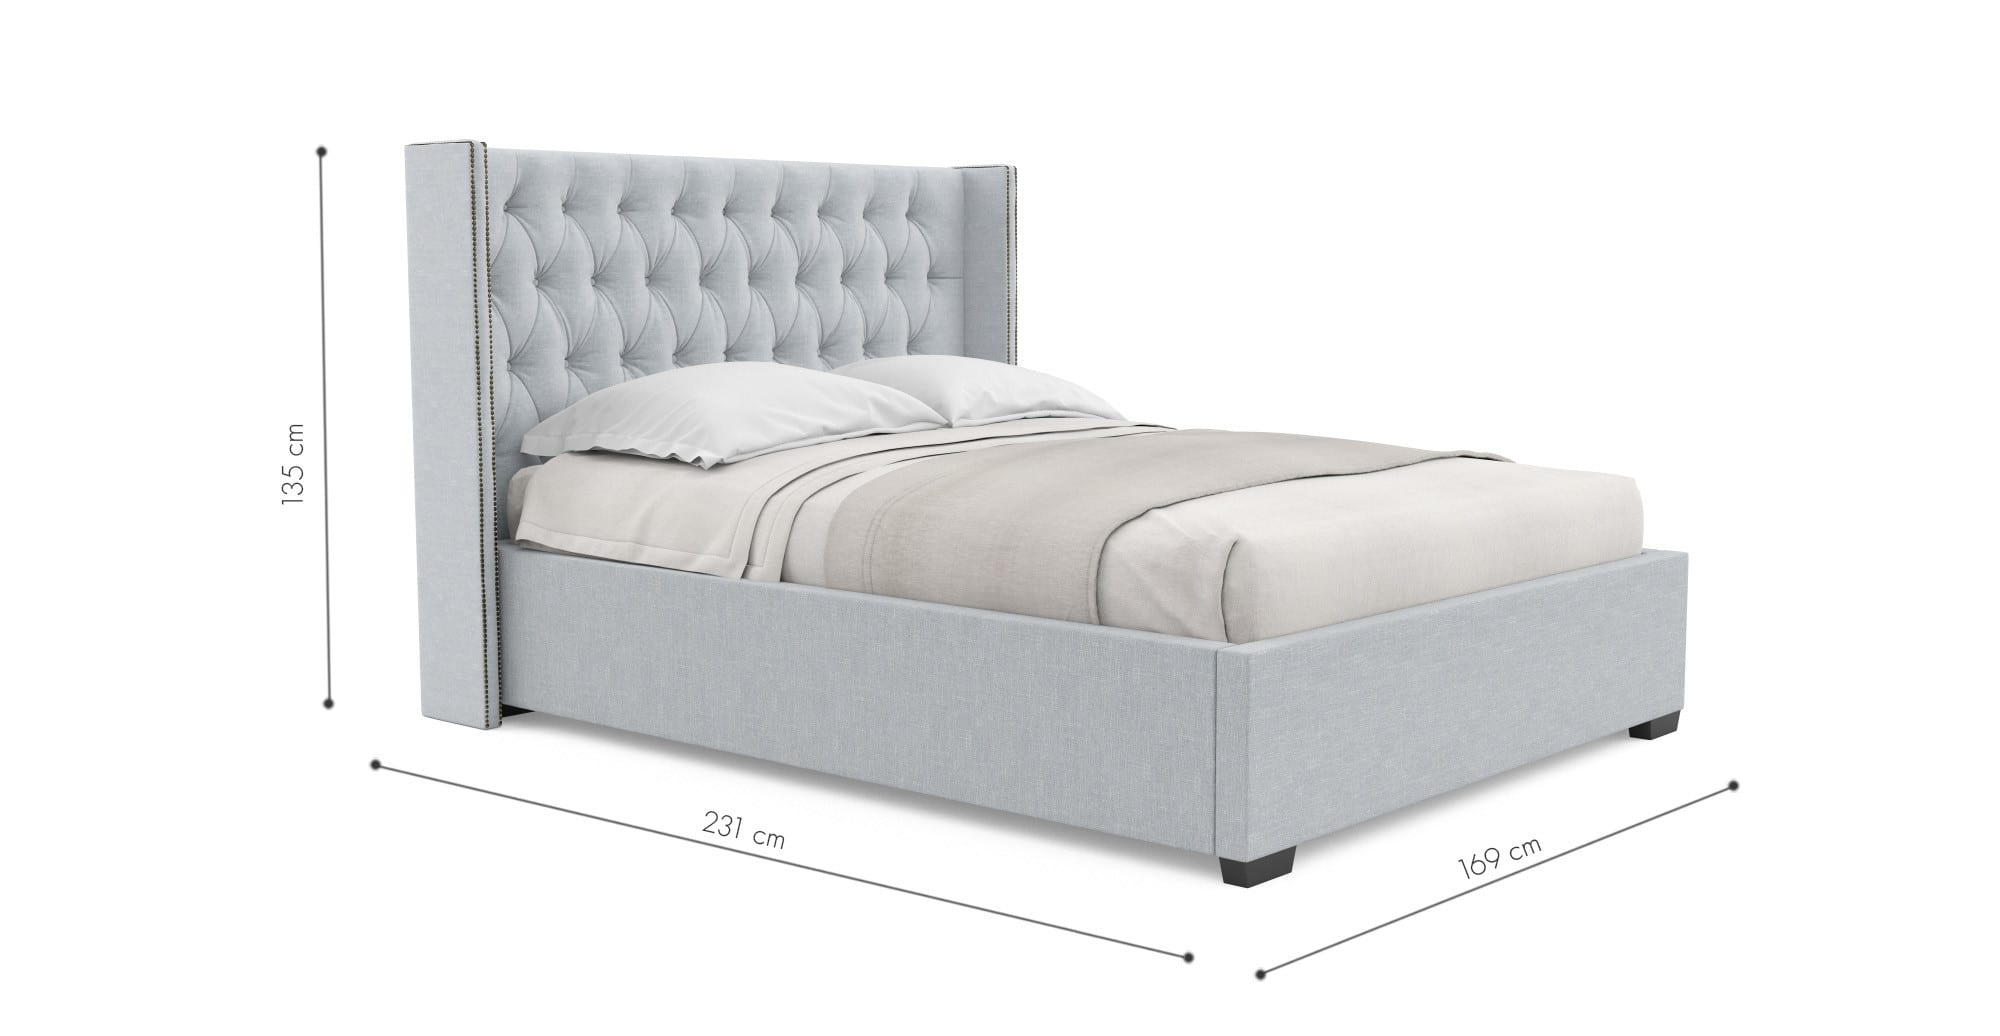 Buy Stella Gas Lift Queen Size Bed Frame Online in Australia | BROSA